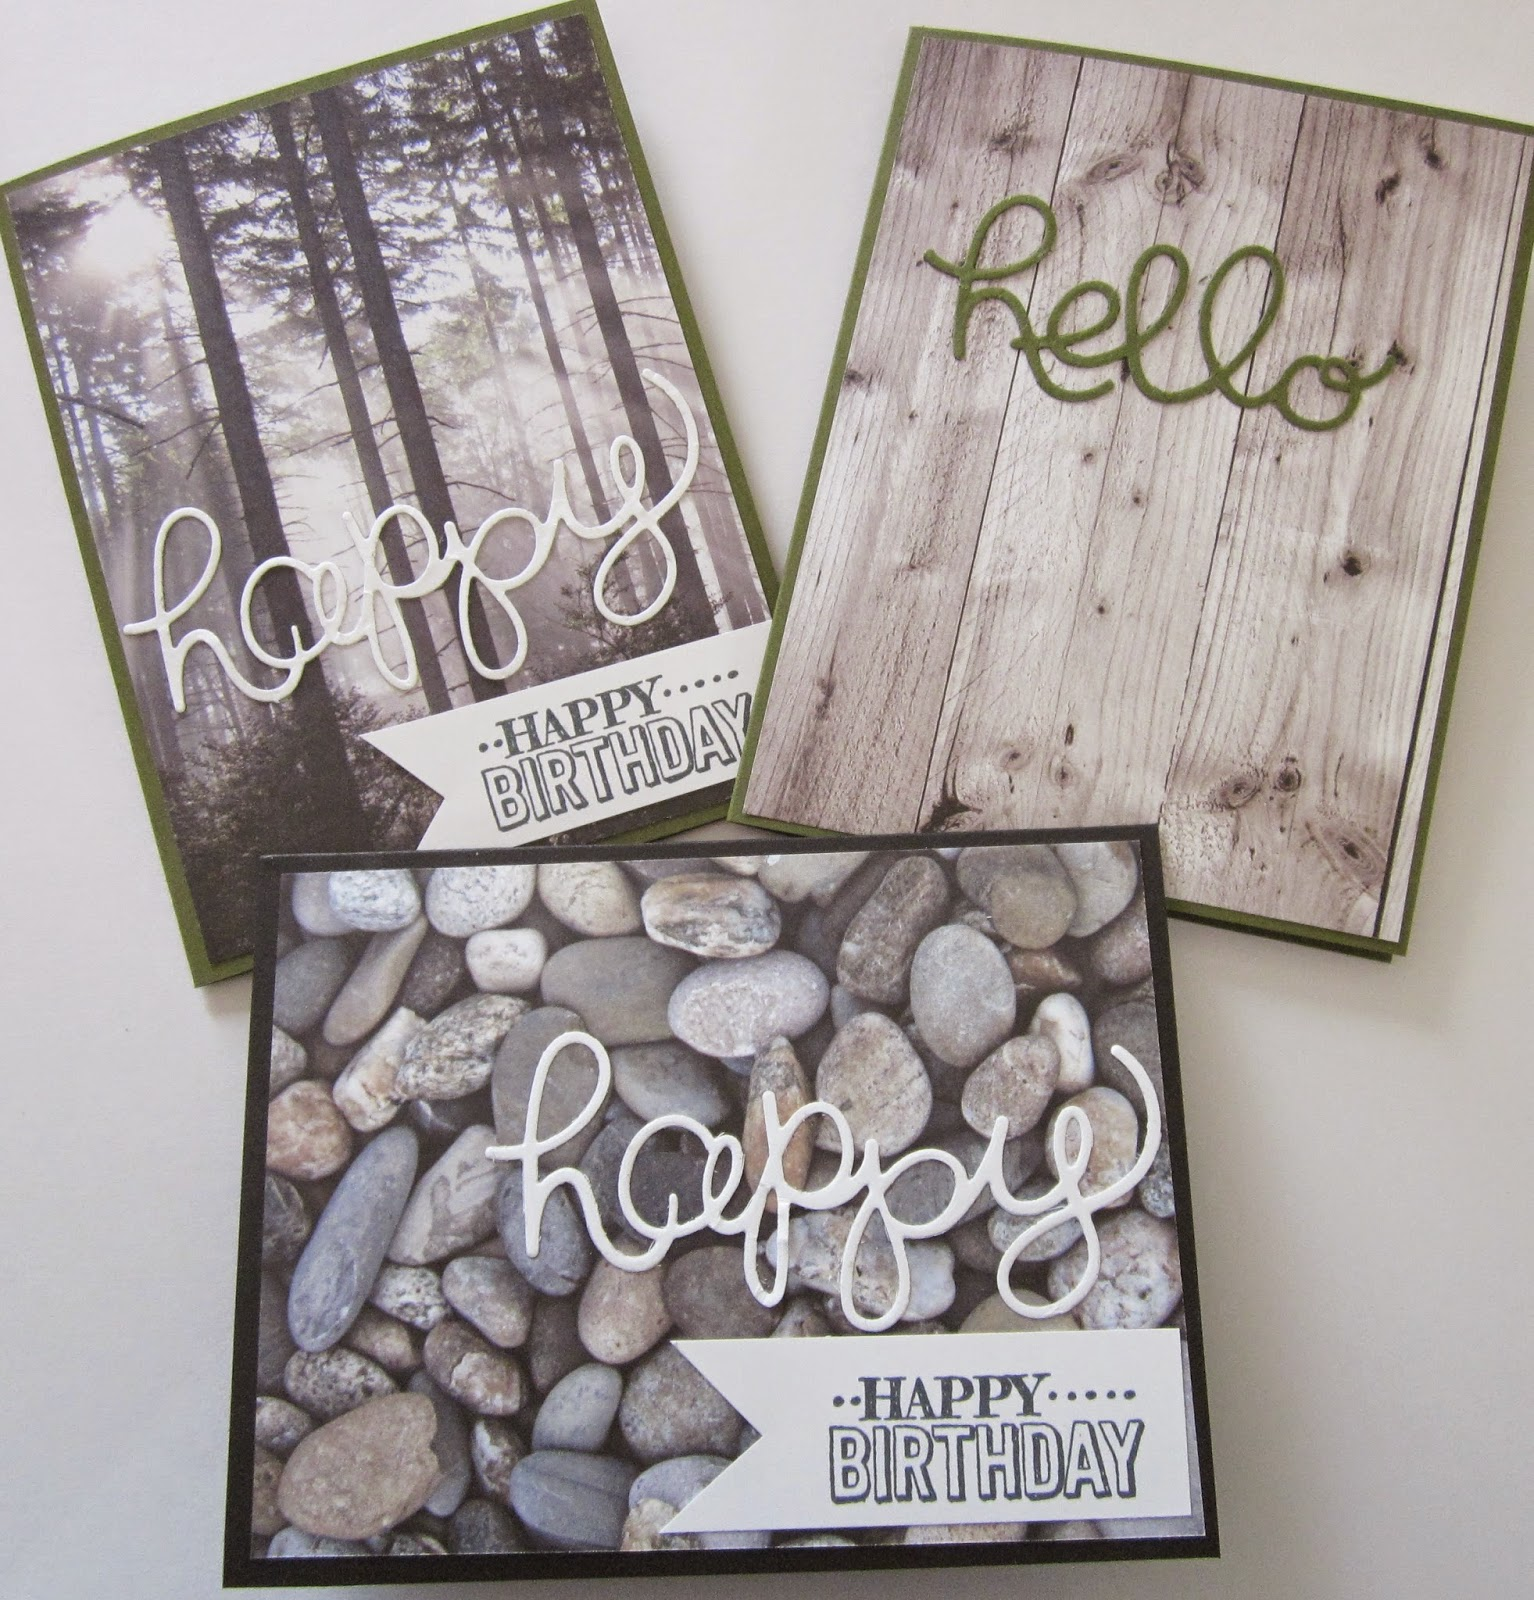 Quick and Easy cards using Adventure Bound paper stack, Hello You Thinlits dies, Basic Black, Whisper White, and Mossy Meadow Cardstock, with Big Day stamp set and Memento Tuxedo Black ink.